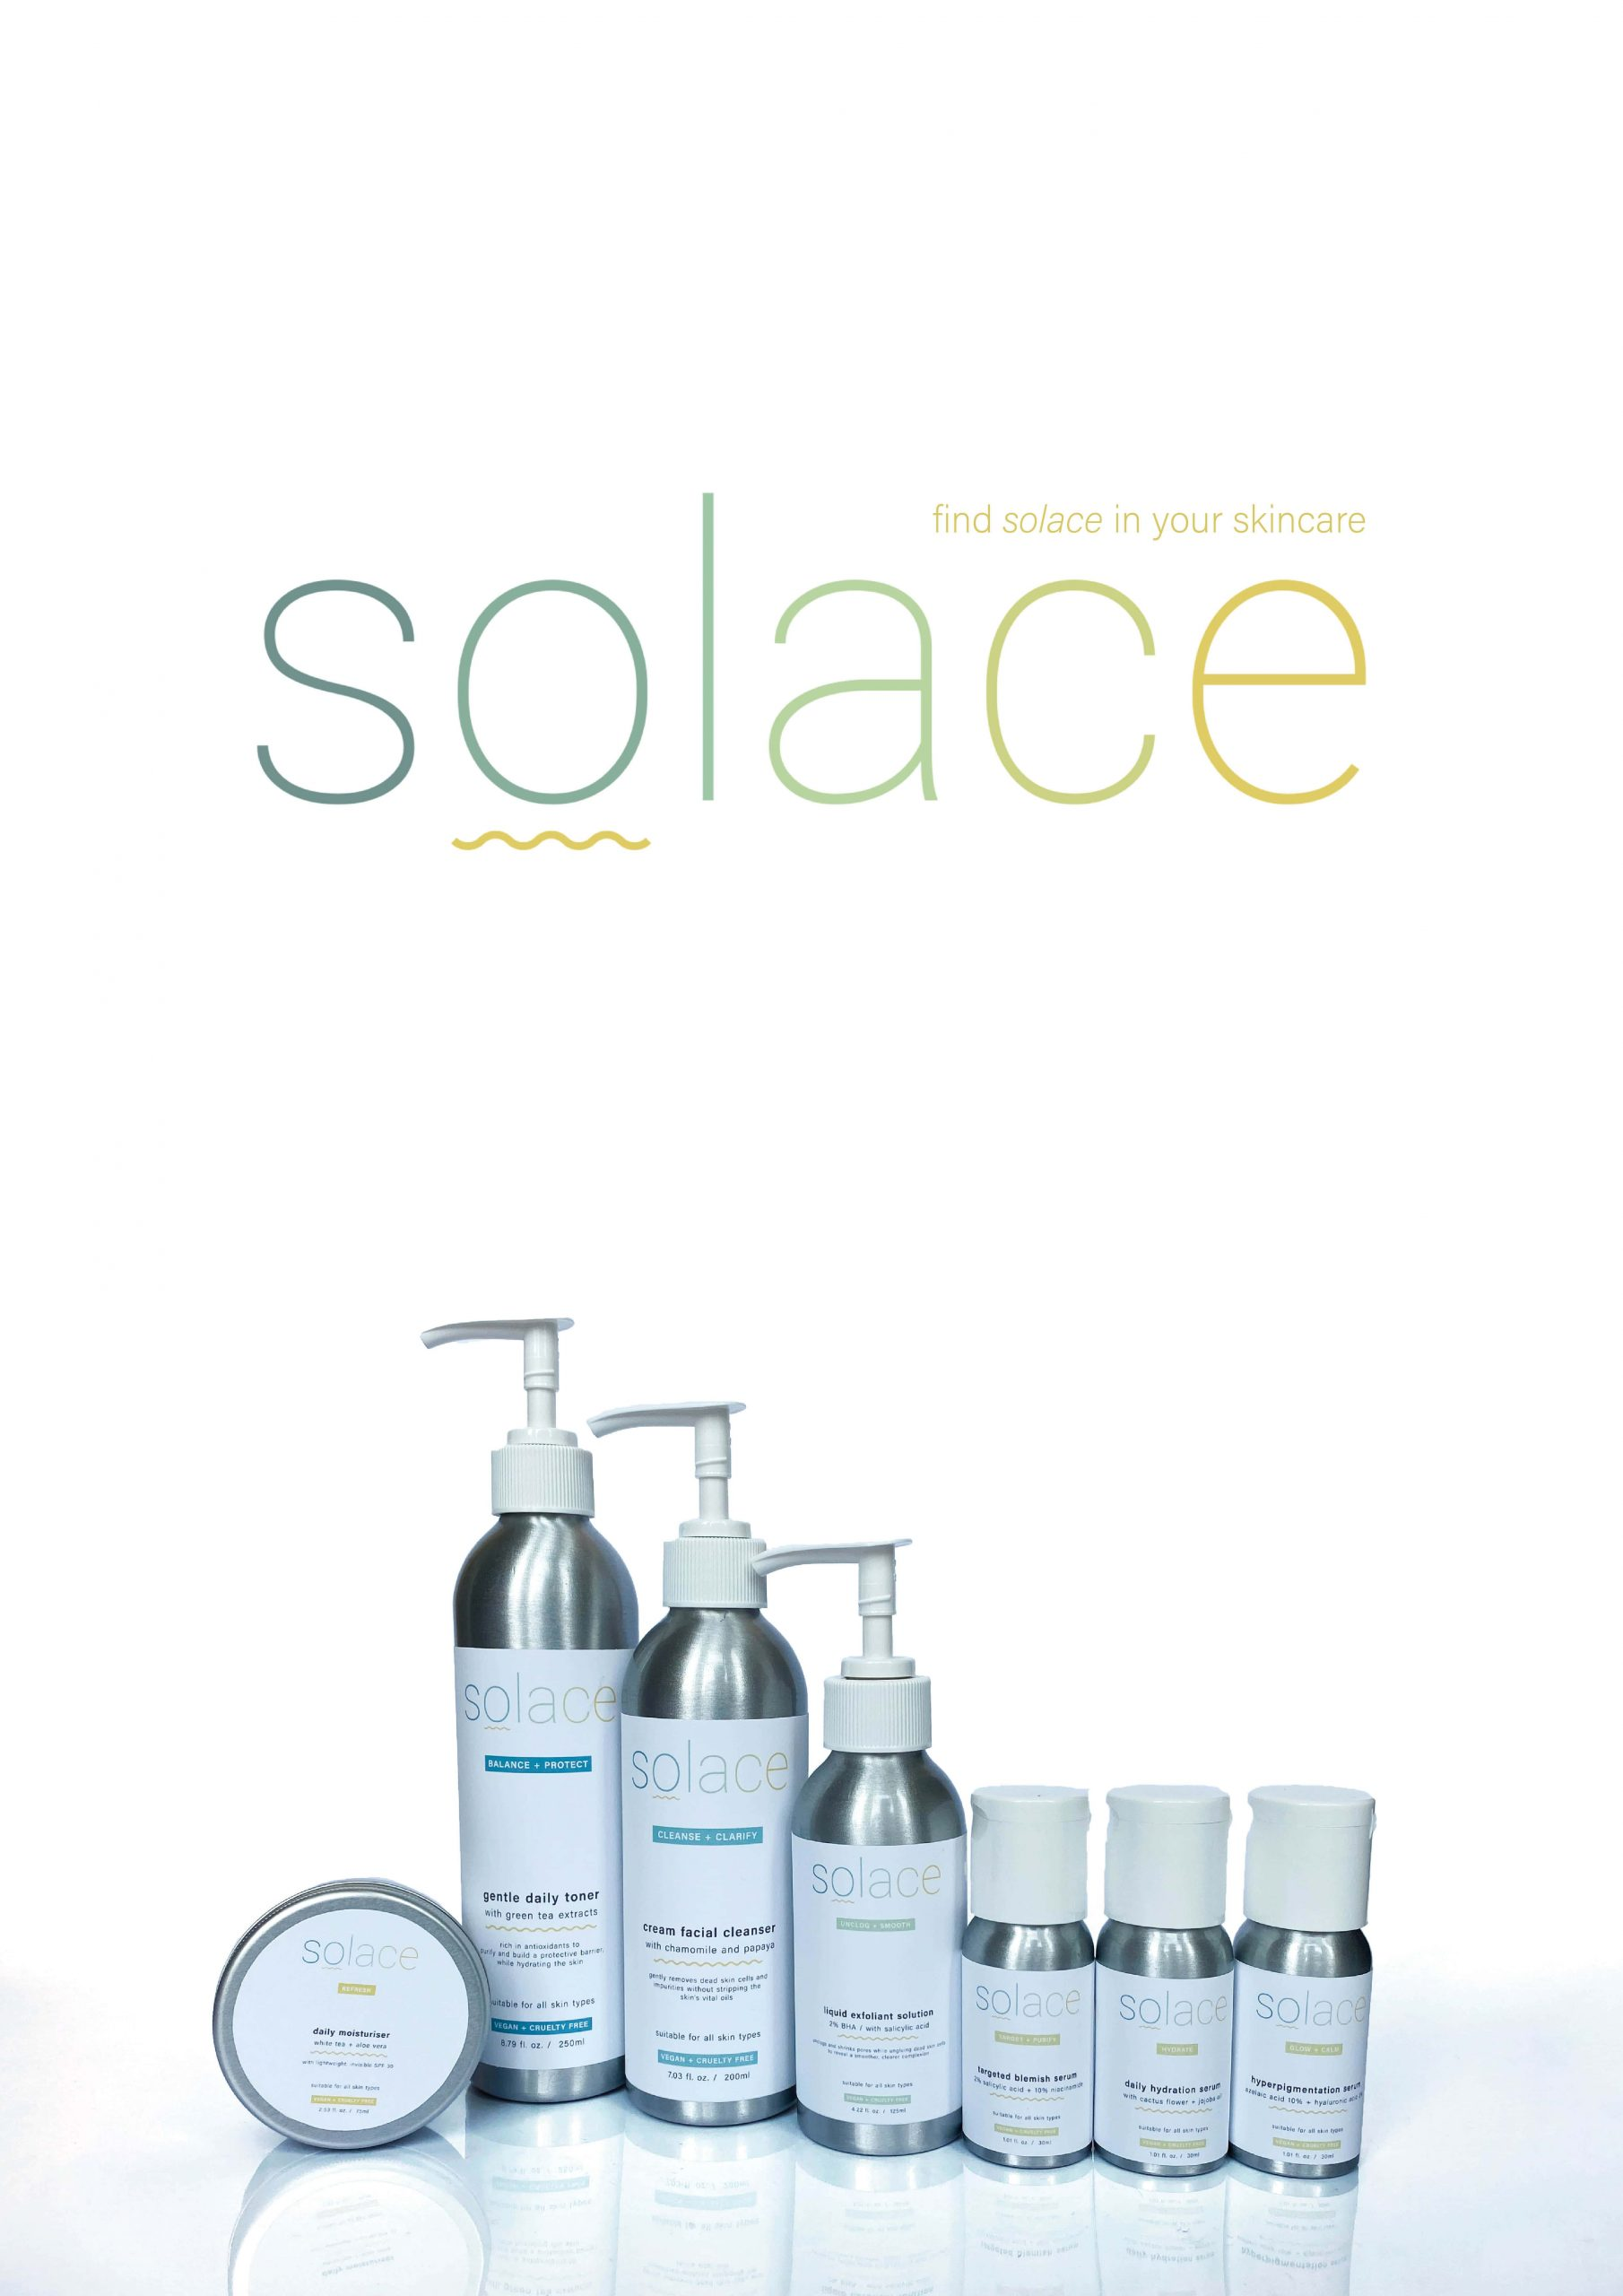 Solace Skincare Packaging